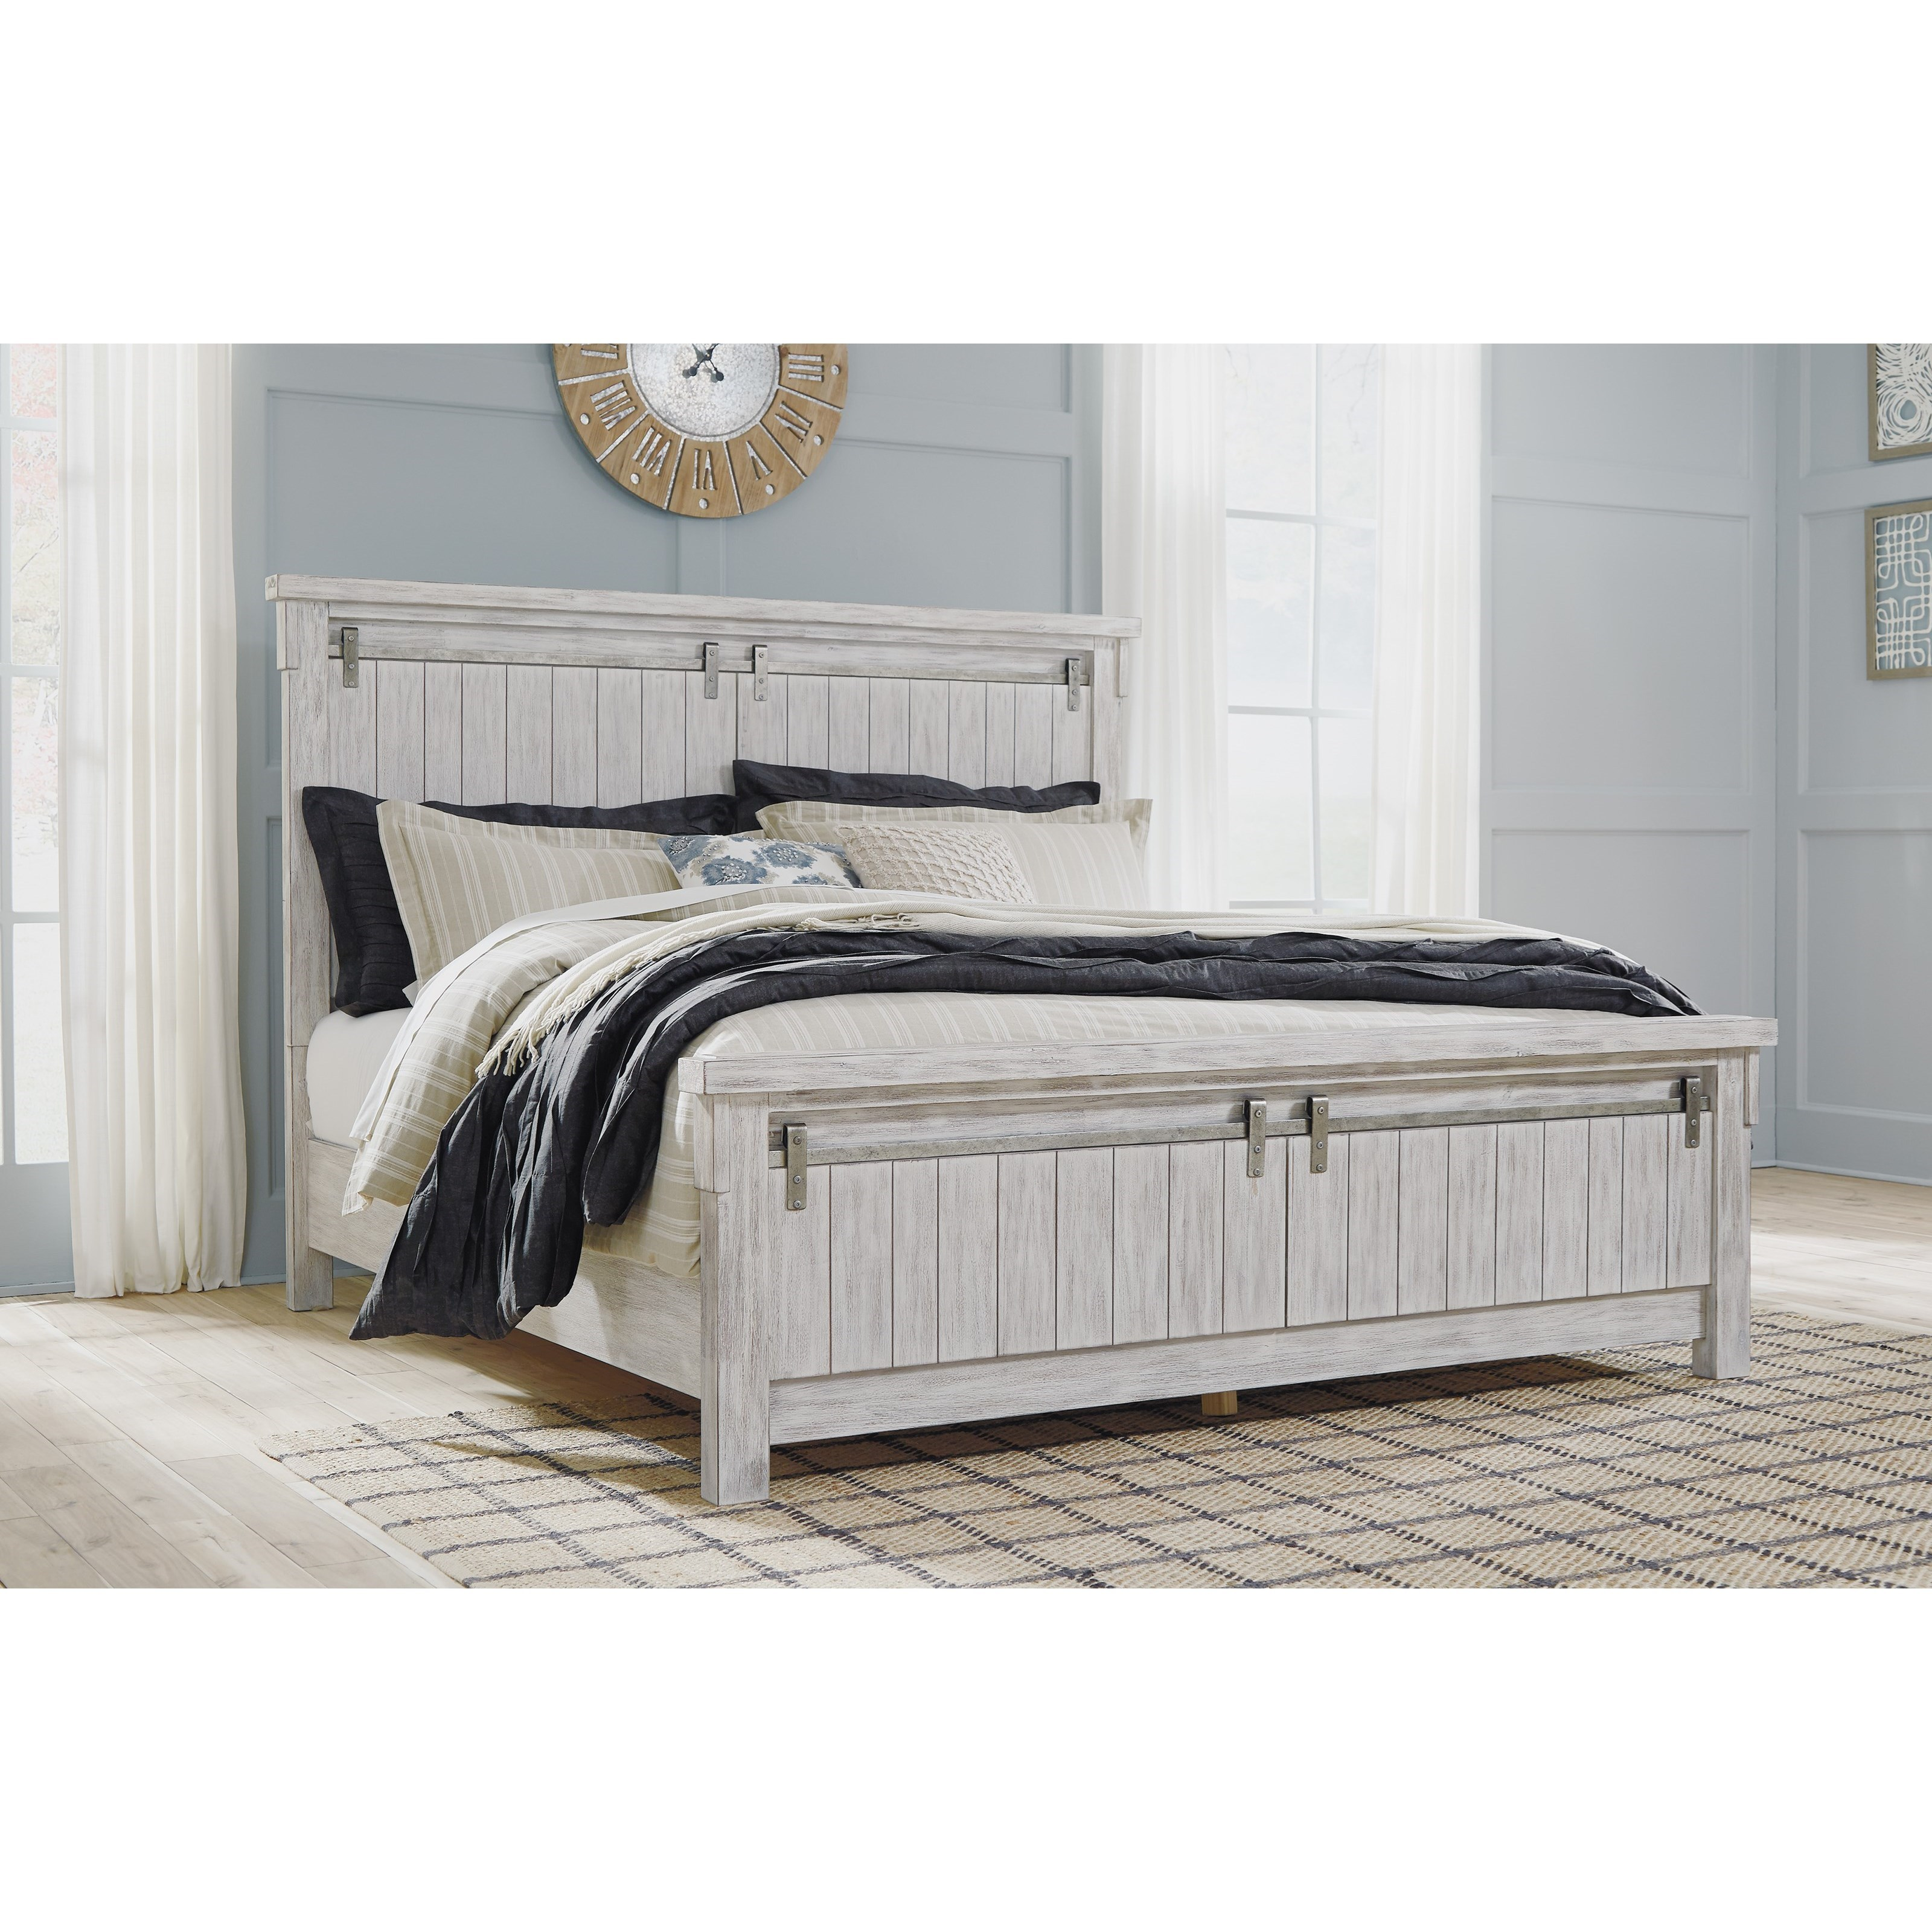 Brashland King Panel Bed by Signature Design by Ashley at Sparks HomeStore